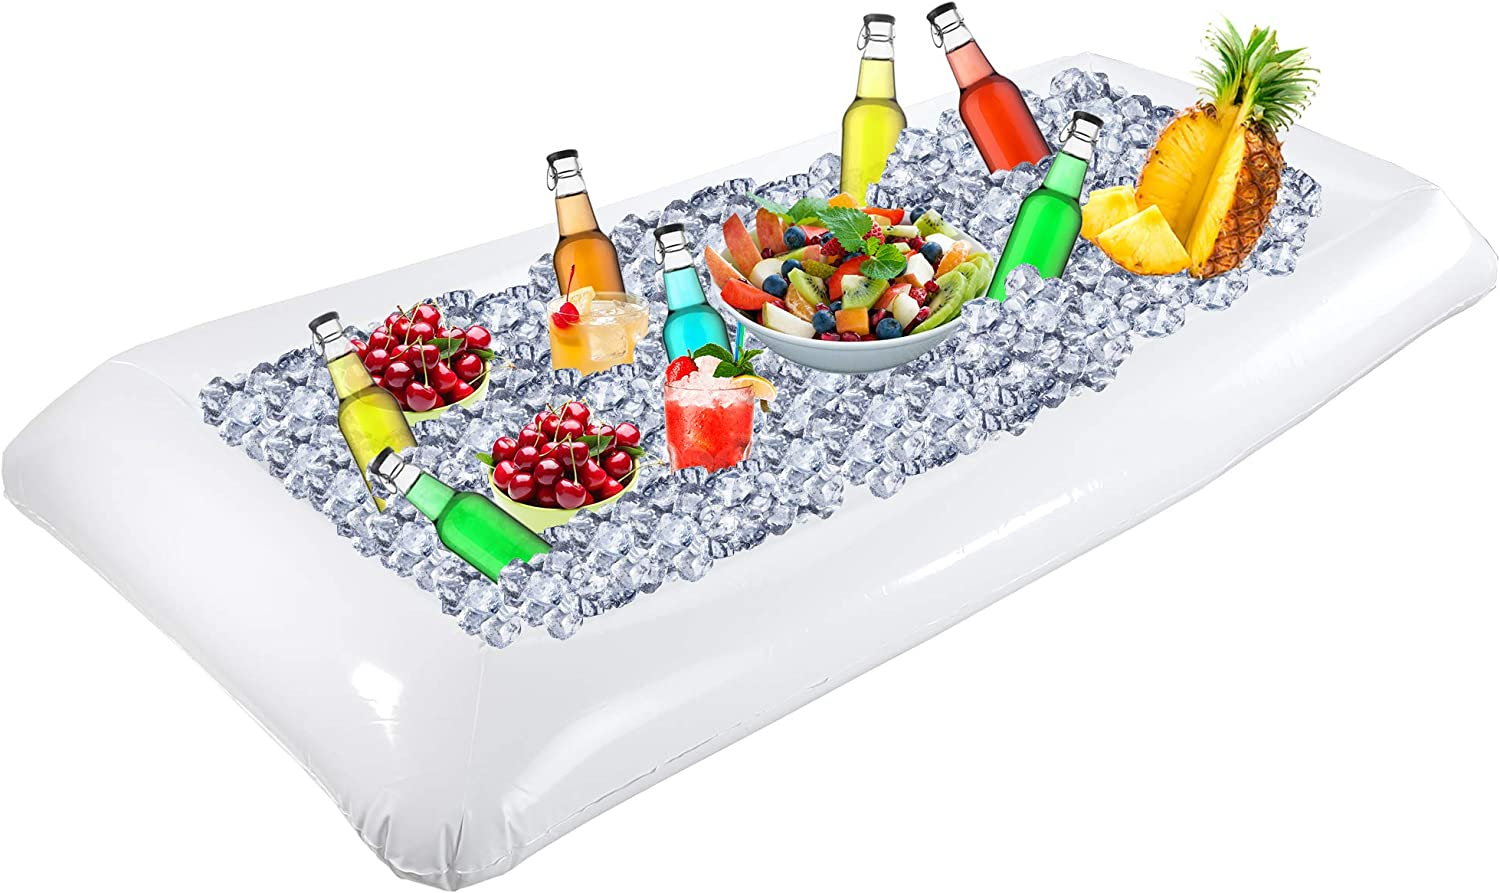 Outdoor Inflatable Buffet Cooler Server - White Blow Up Cooling Tub For Serving Buffet Style Picnic